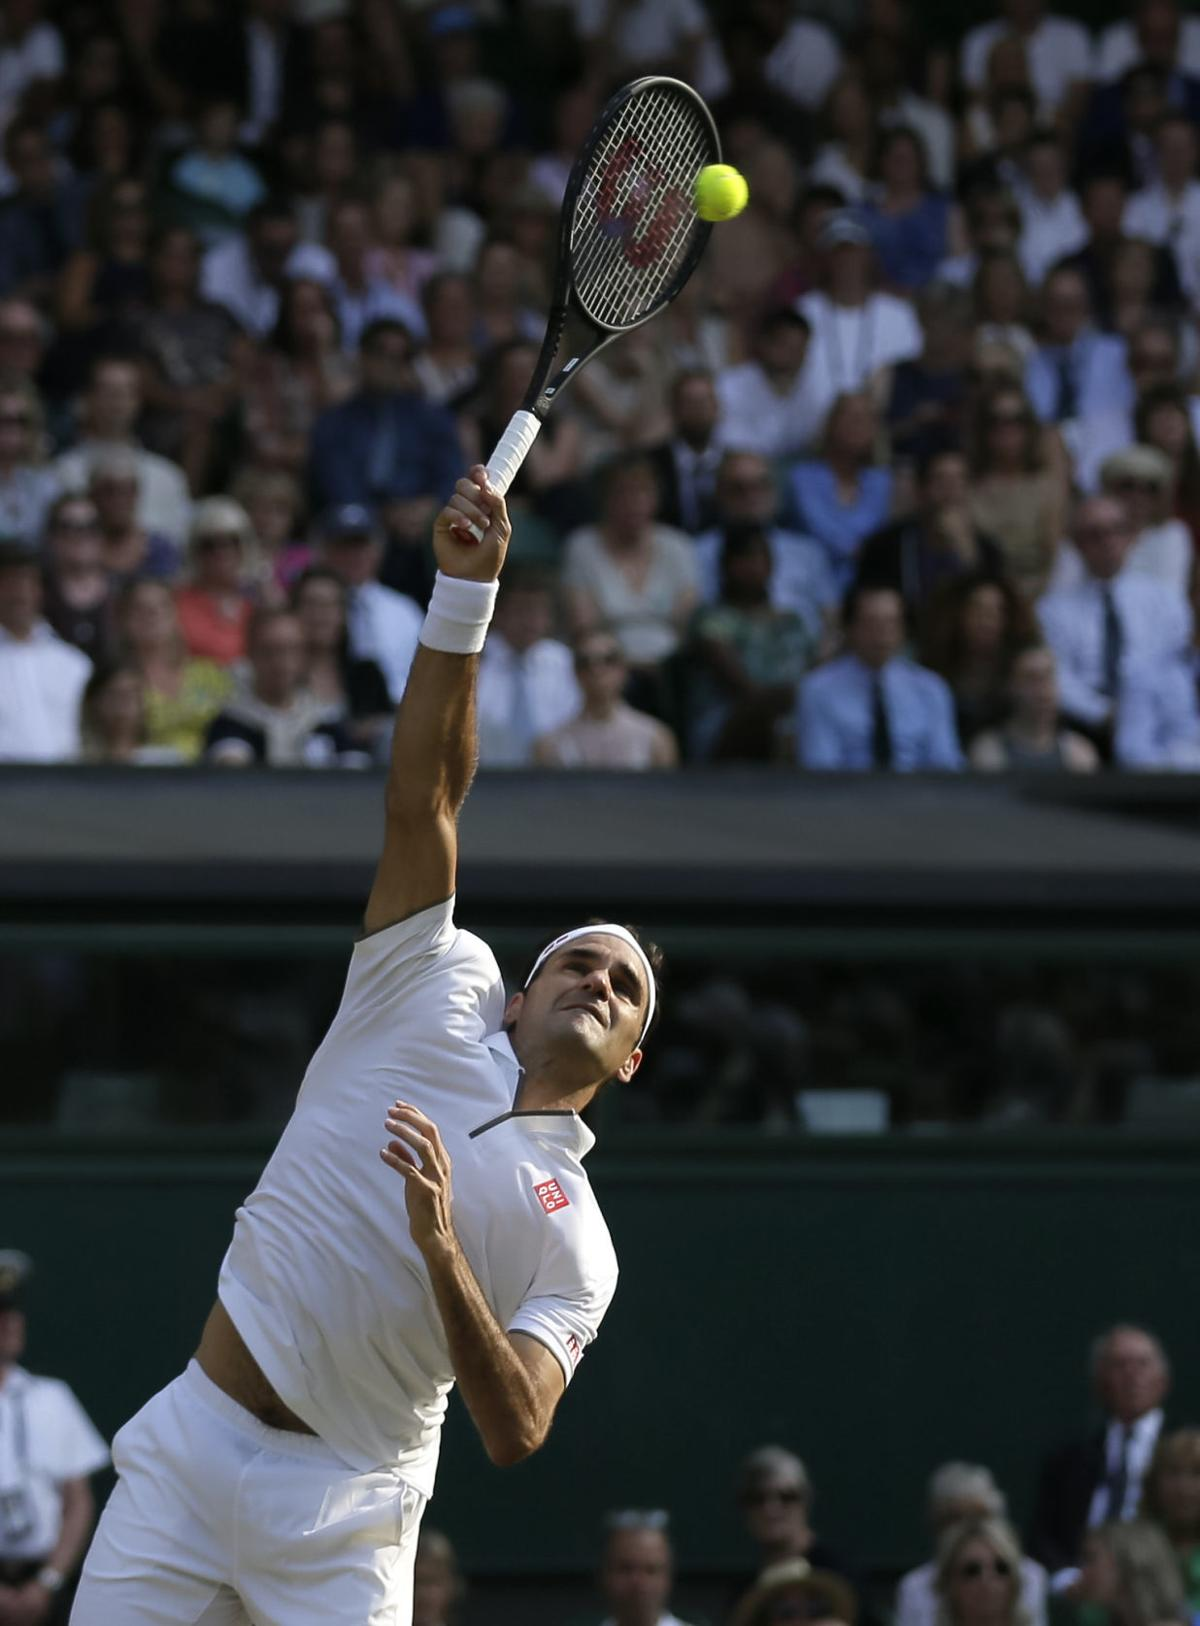 Federer and Nadal to play at Wimbledon for first time since 2008